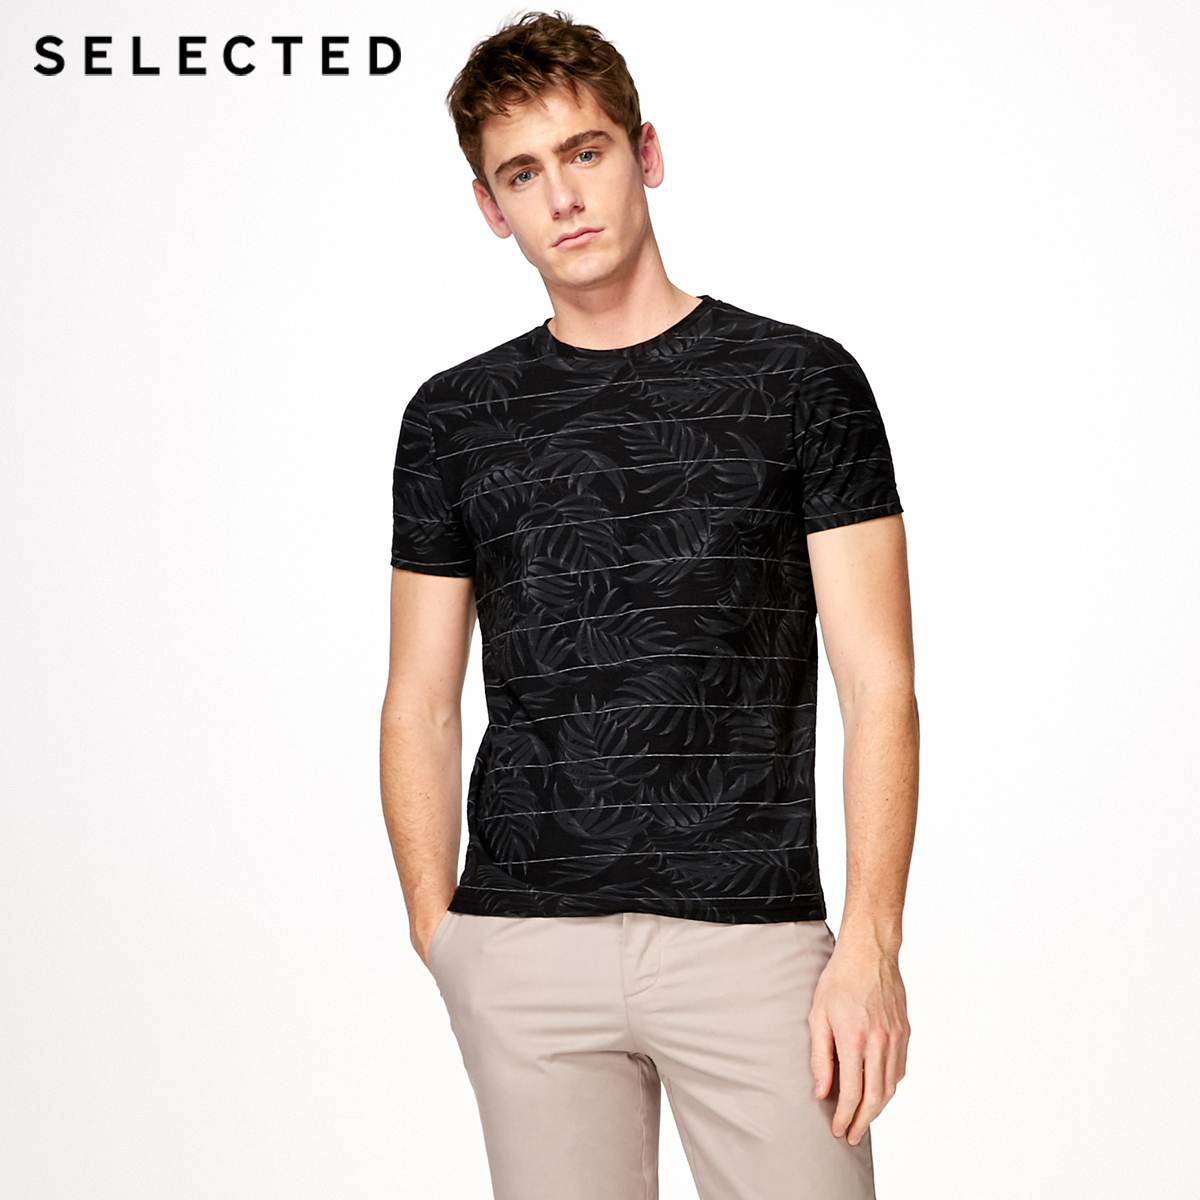 SELECTED cotton skin texture   T     shirt   S|4182T4592